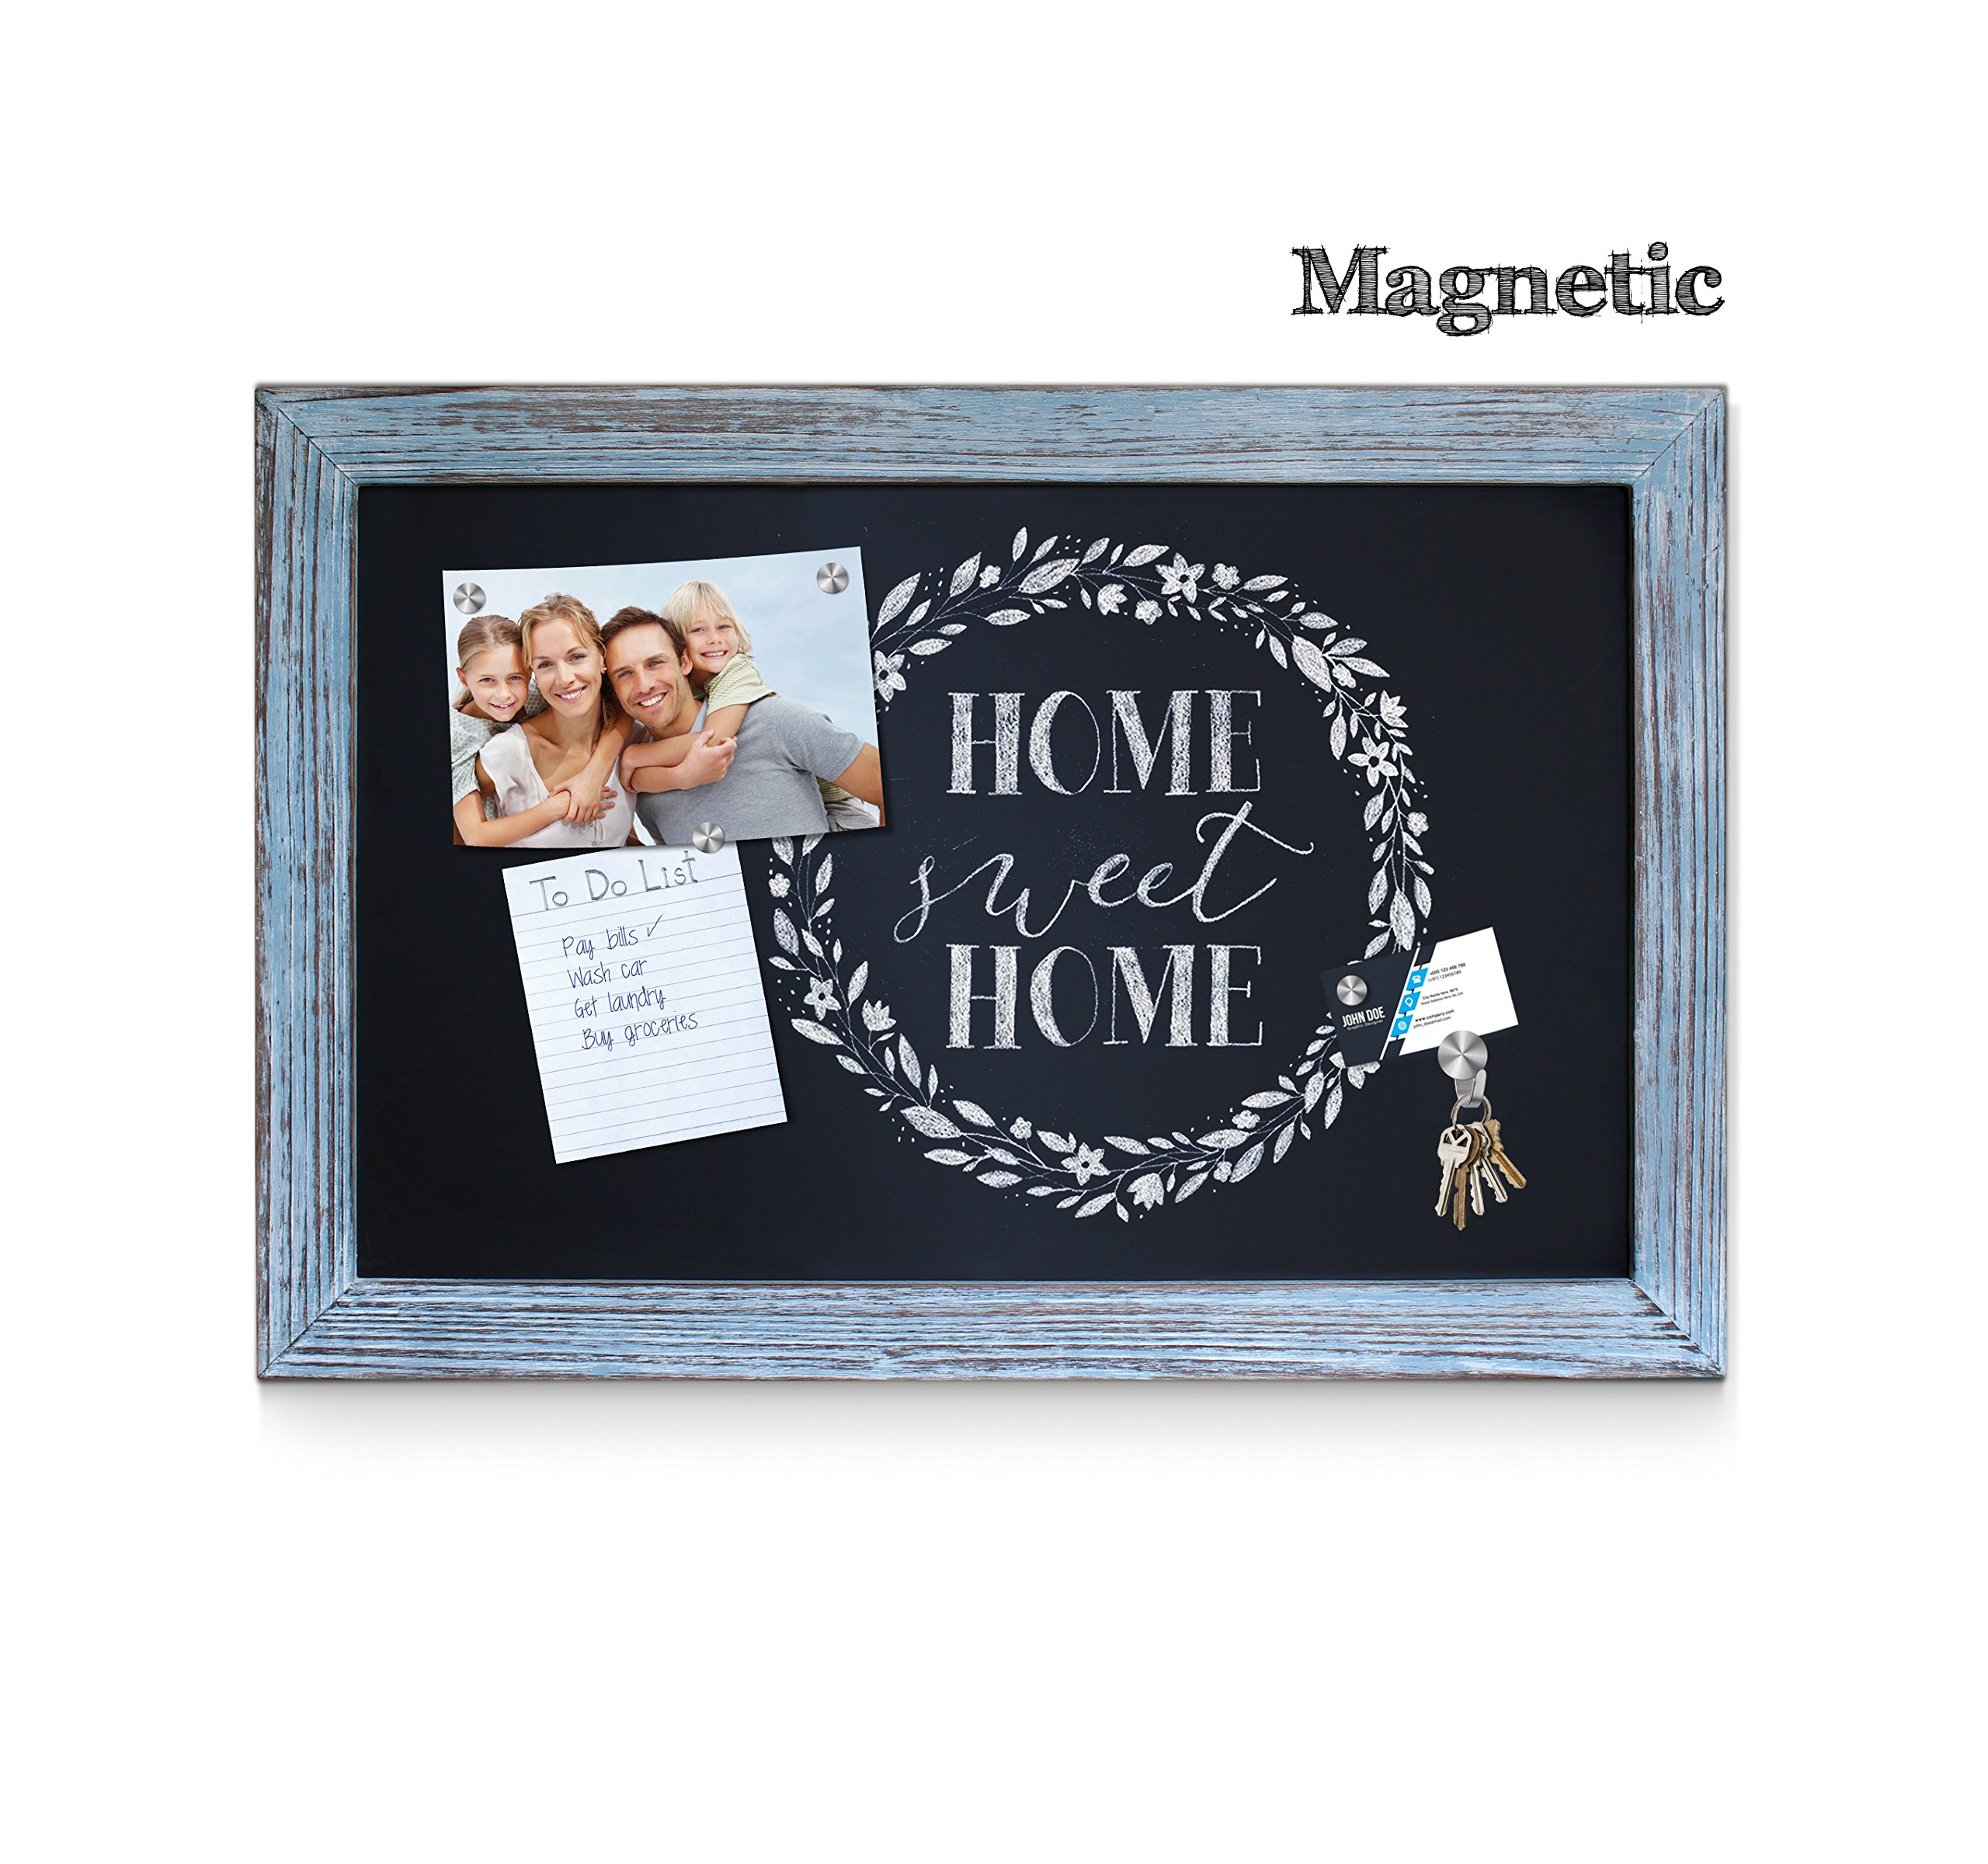 Rustic Blue Magnetic Wall Chalkboard, Extra Large Size 20'' x 30'', Framed Decorative Chalkboard - Great for Kitchen Decor, Weddings, Restaurant Menus and More! … (20''x30'') by HBCY Creations (Image #3)